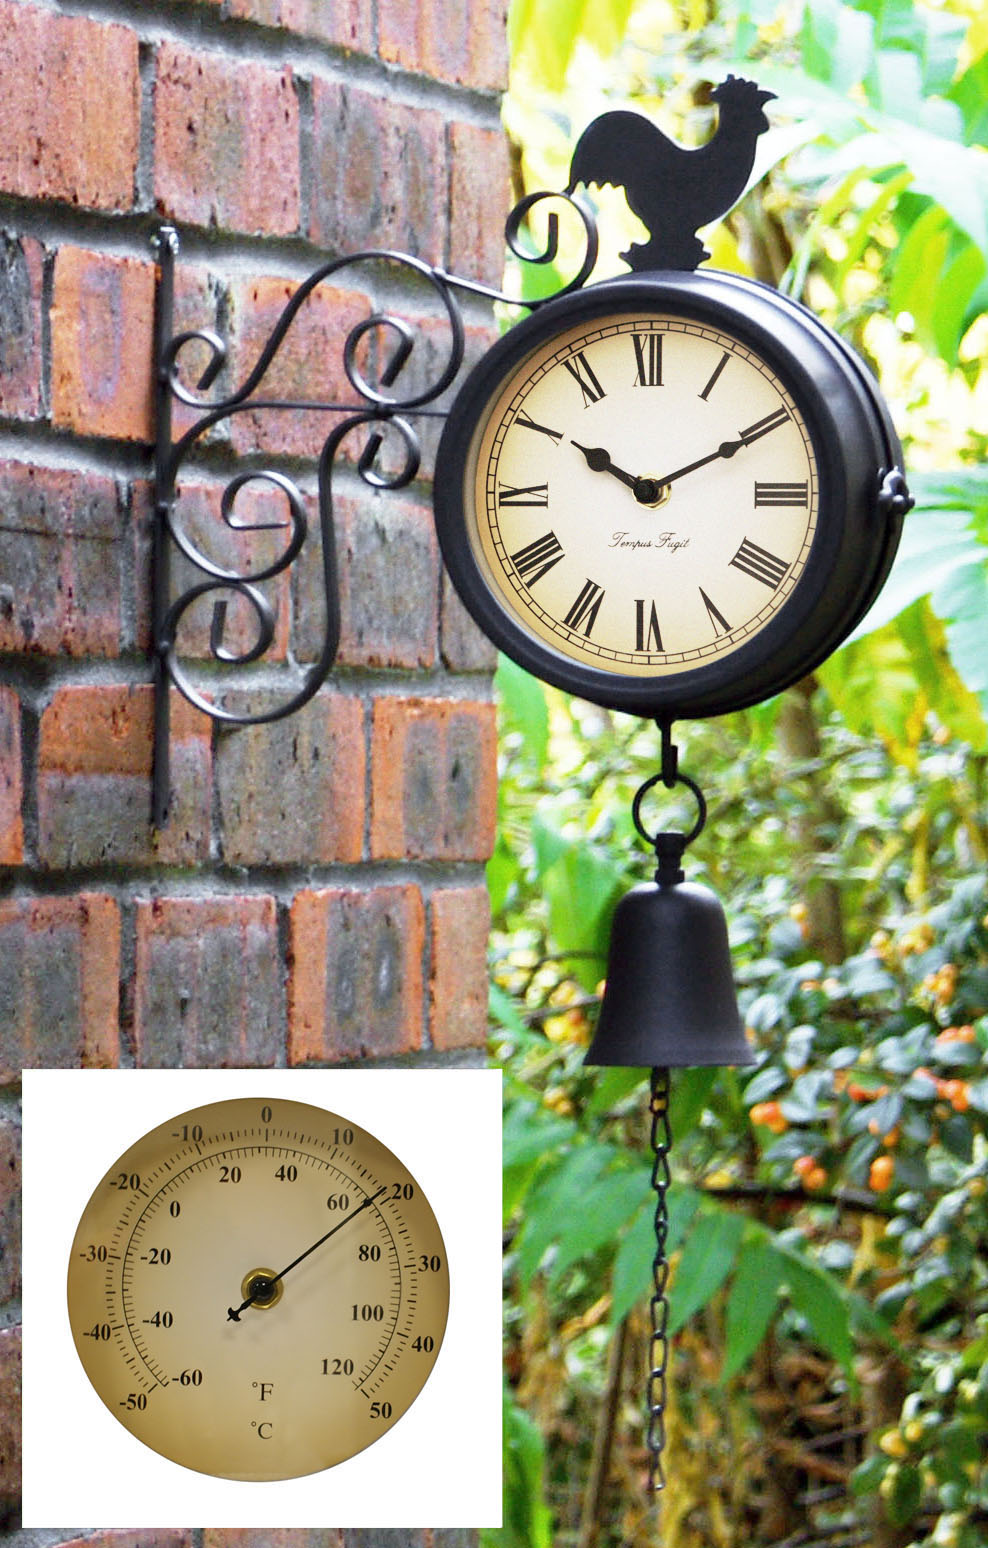 Rooster clock thermometer indoor or outdoor friday finds cockerel bell clock thermometer amipublicfo Images